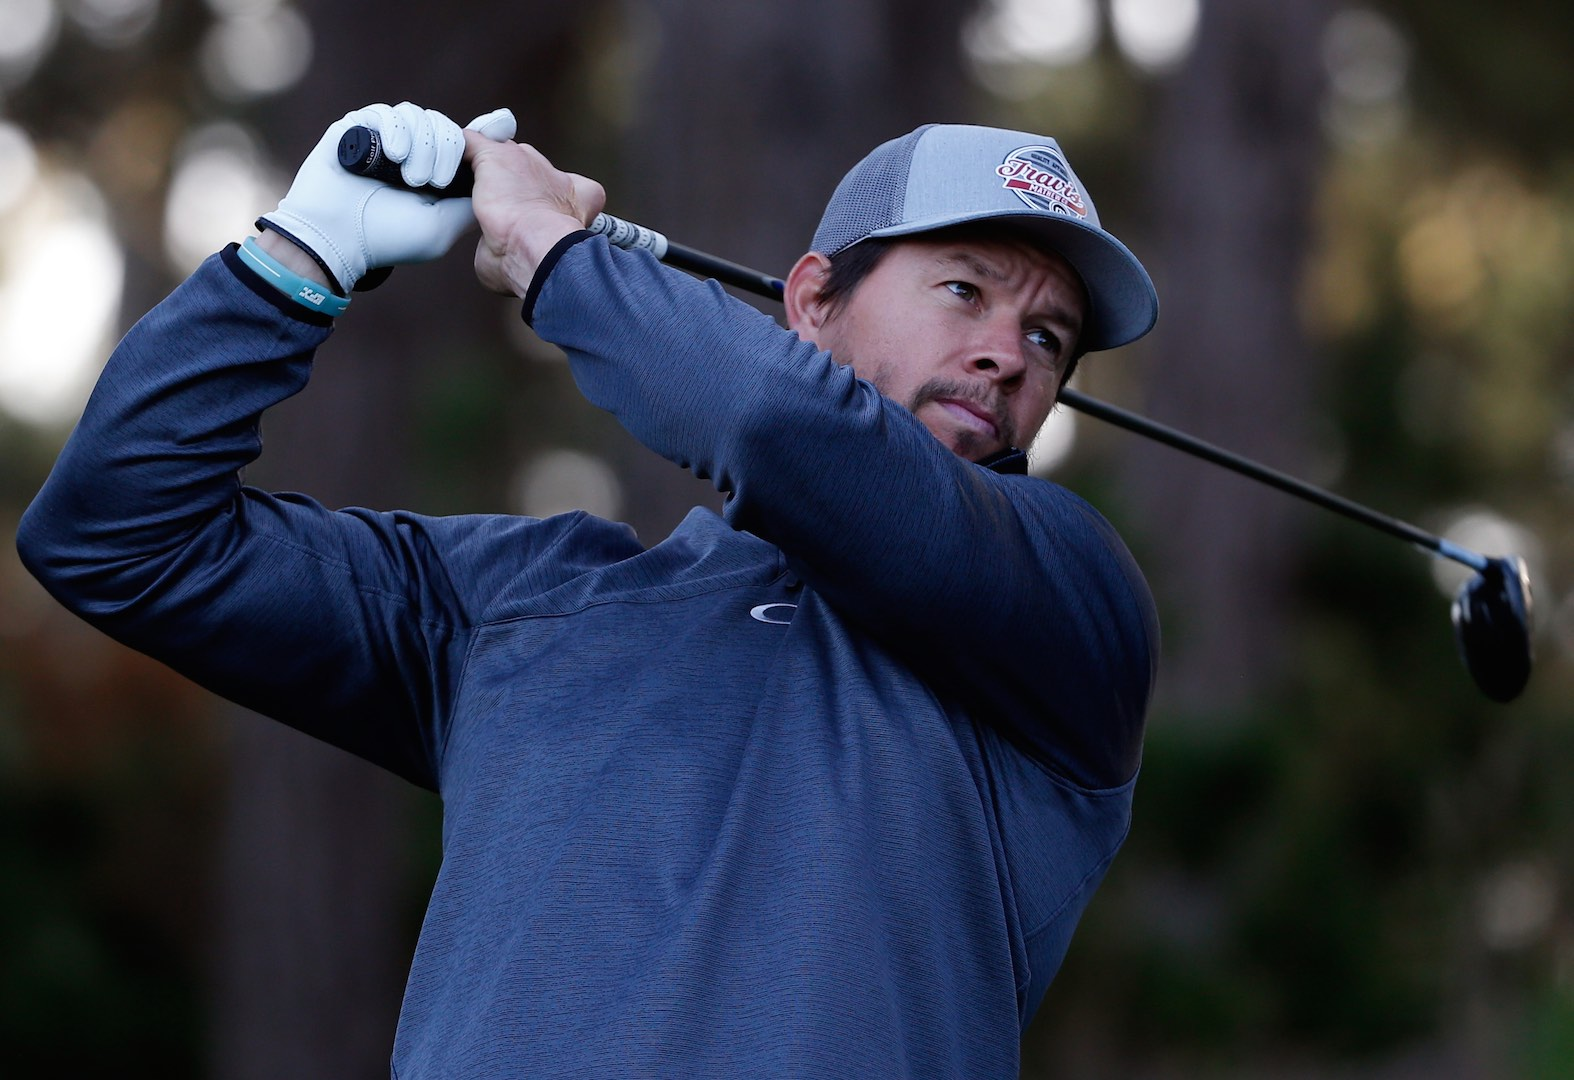 Mark Wahlberg's speed golf